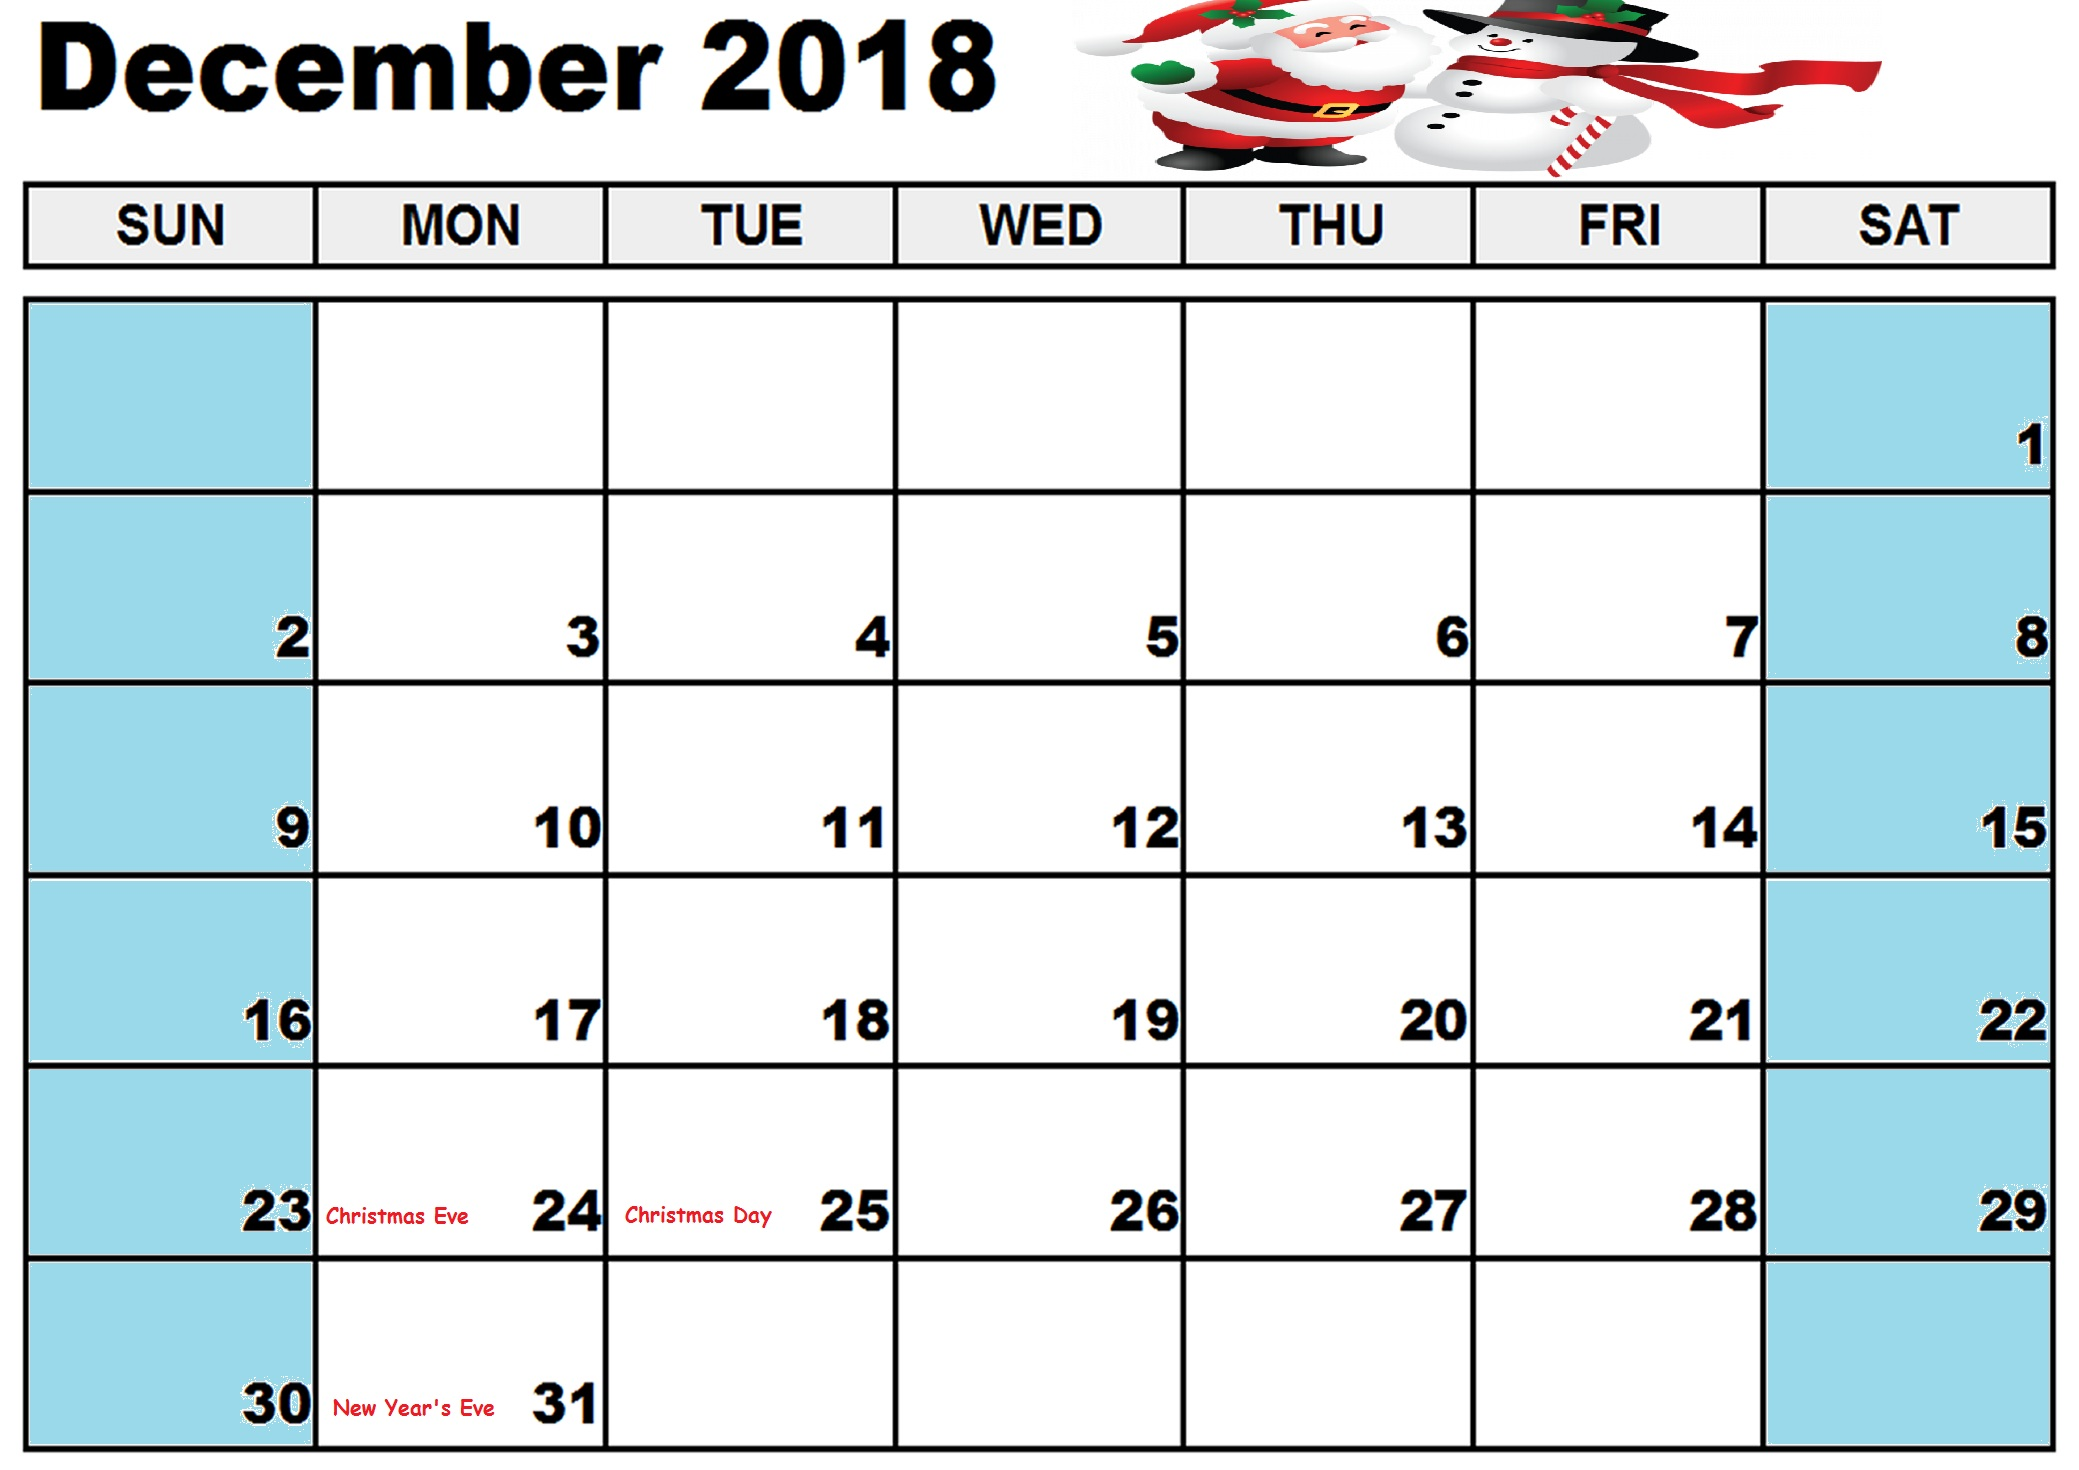 photo relating to Printable December Calendar identify December Calendar 2018 Malaysia - Absolutely free Printable Template